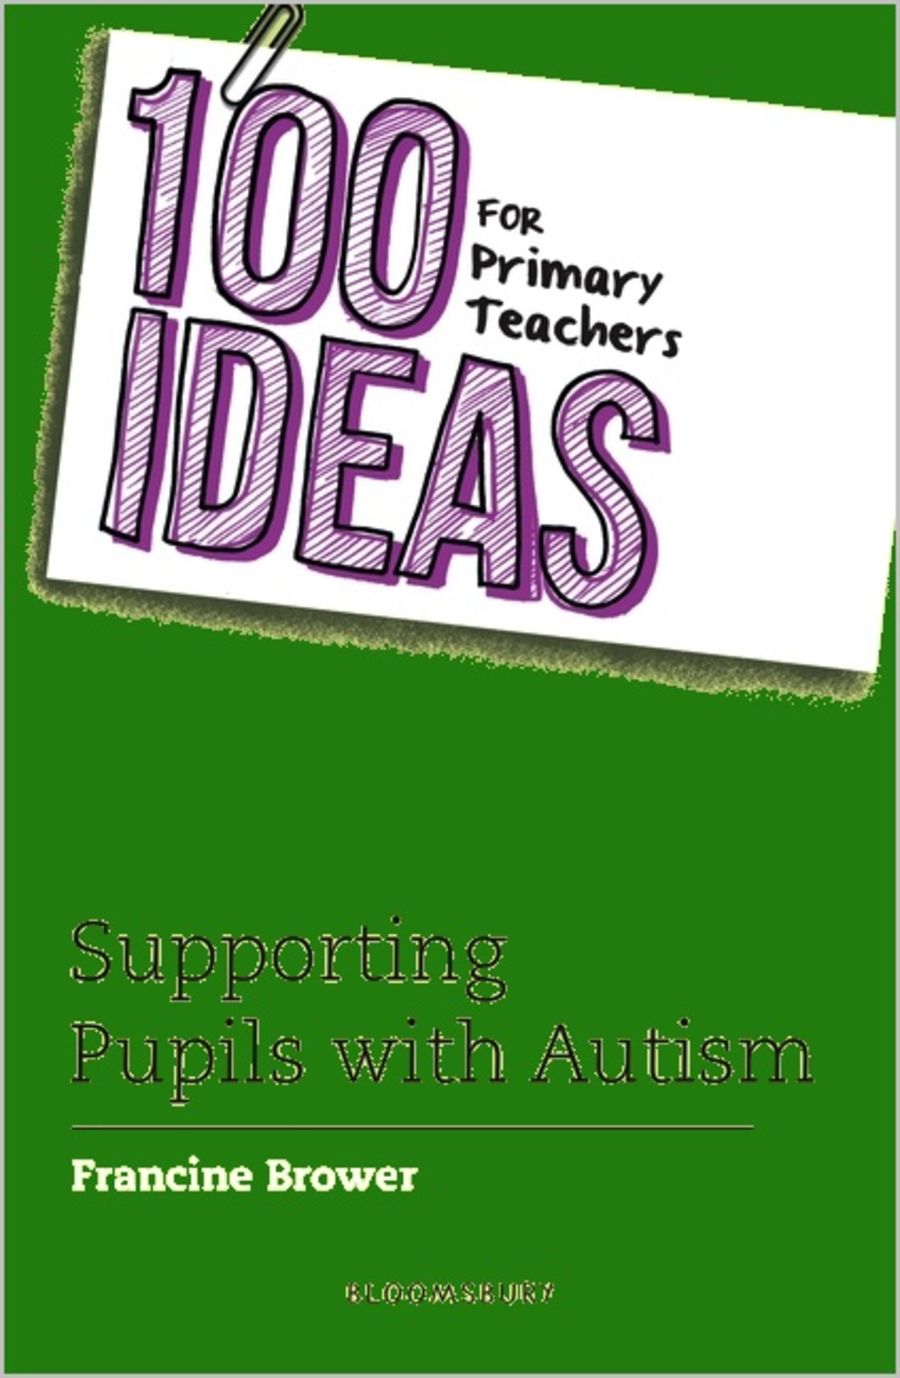 100 ideas for Primary Teachers Supporting Pupils with Autism